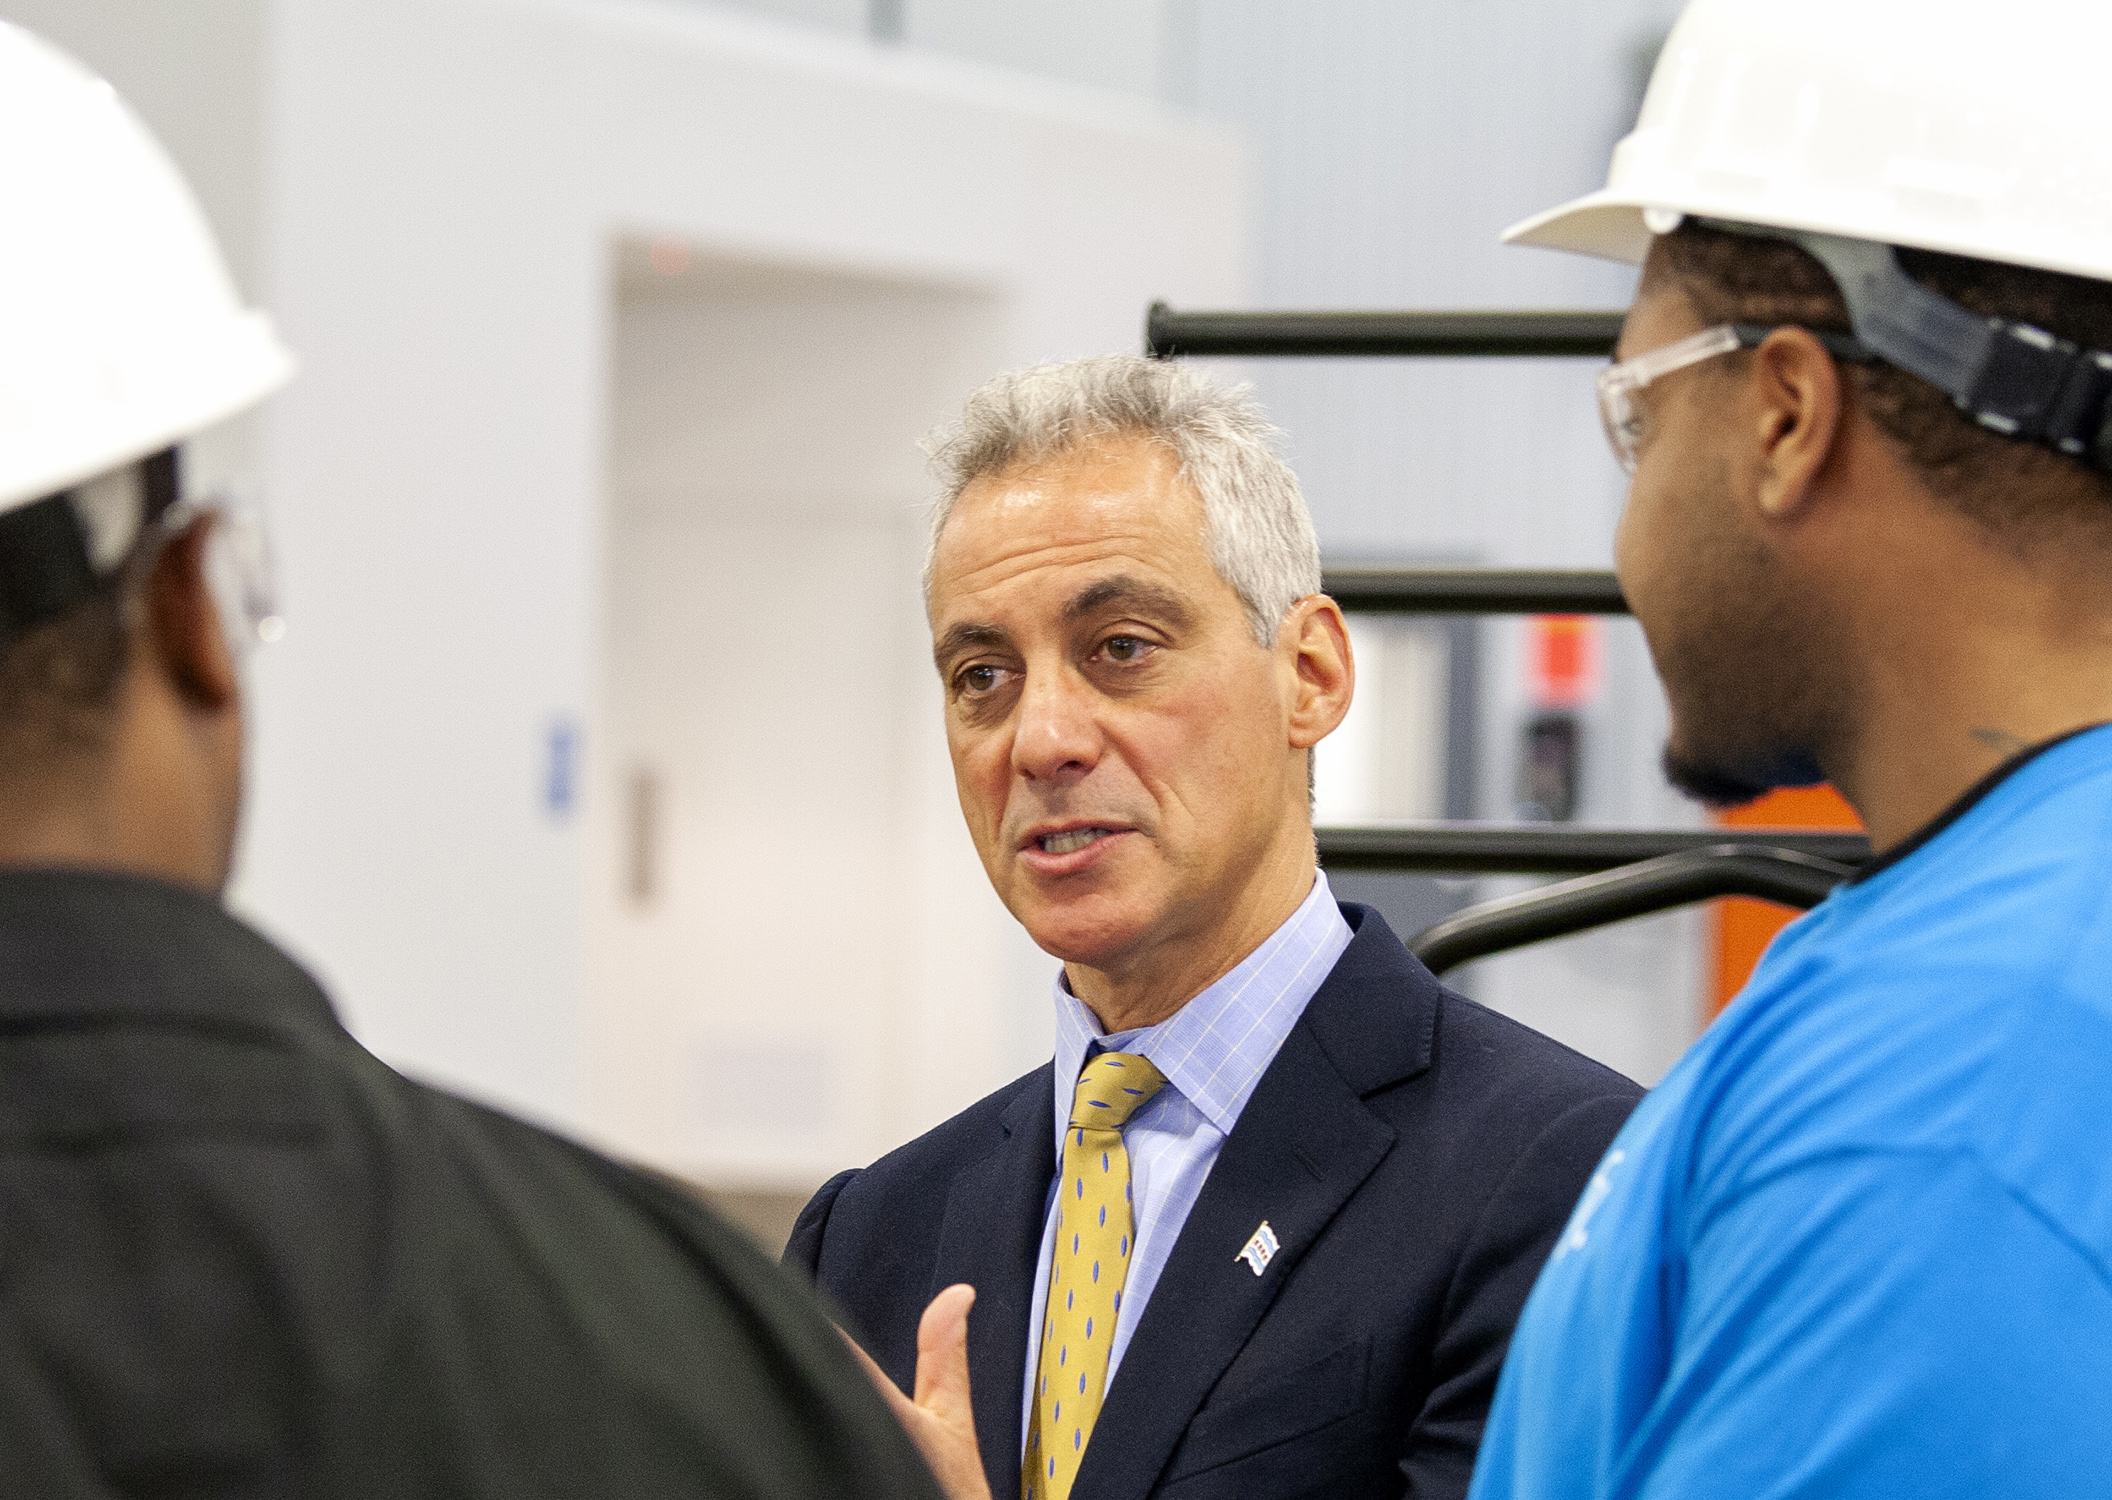 rahm emanuel / chicago mayor